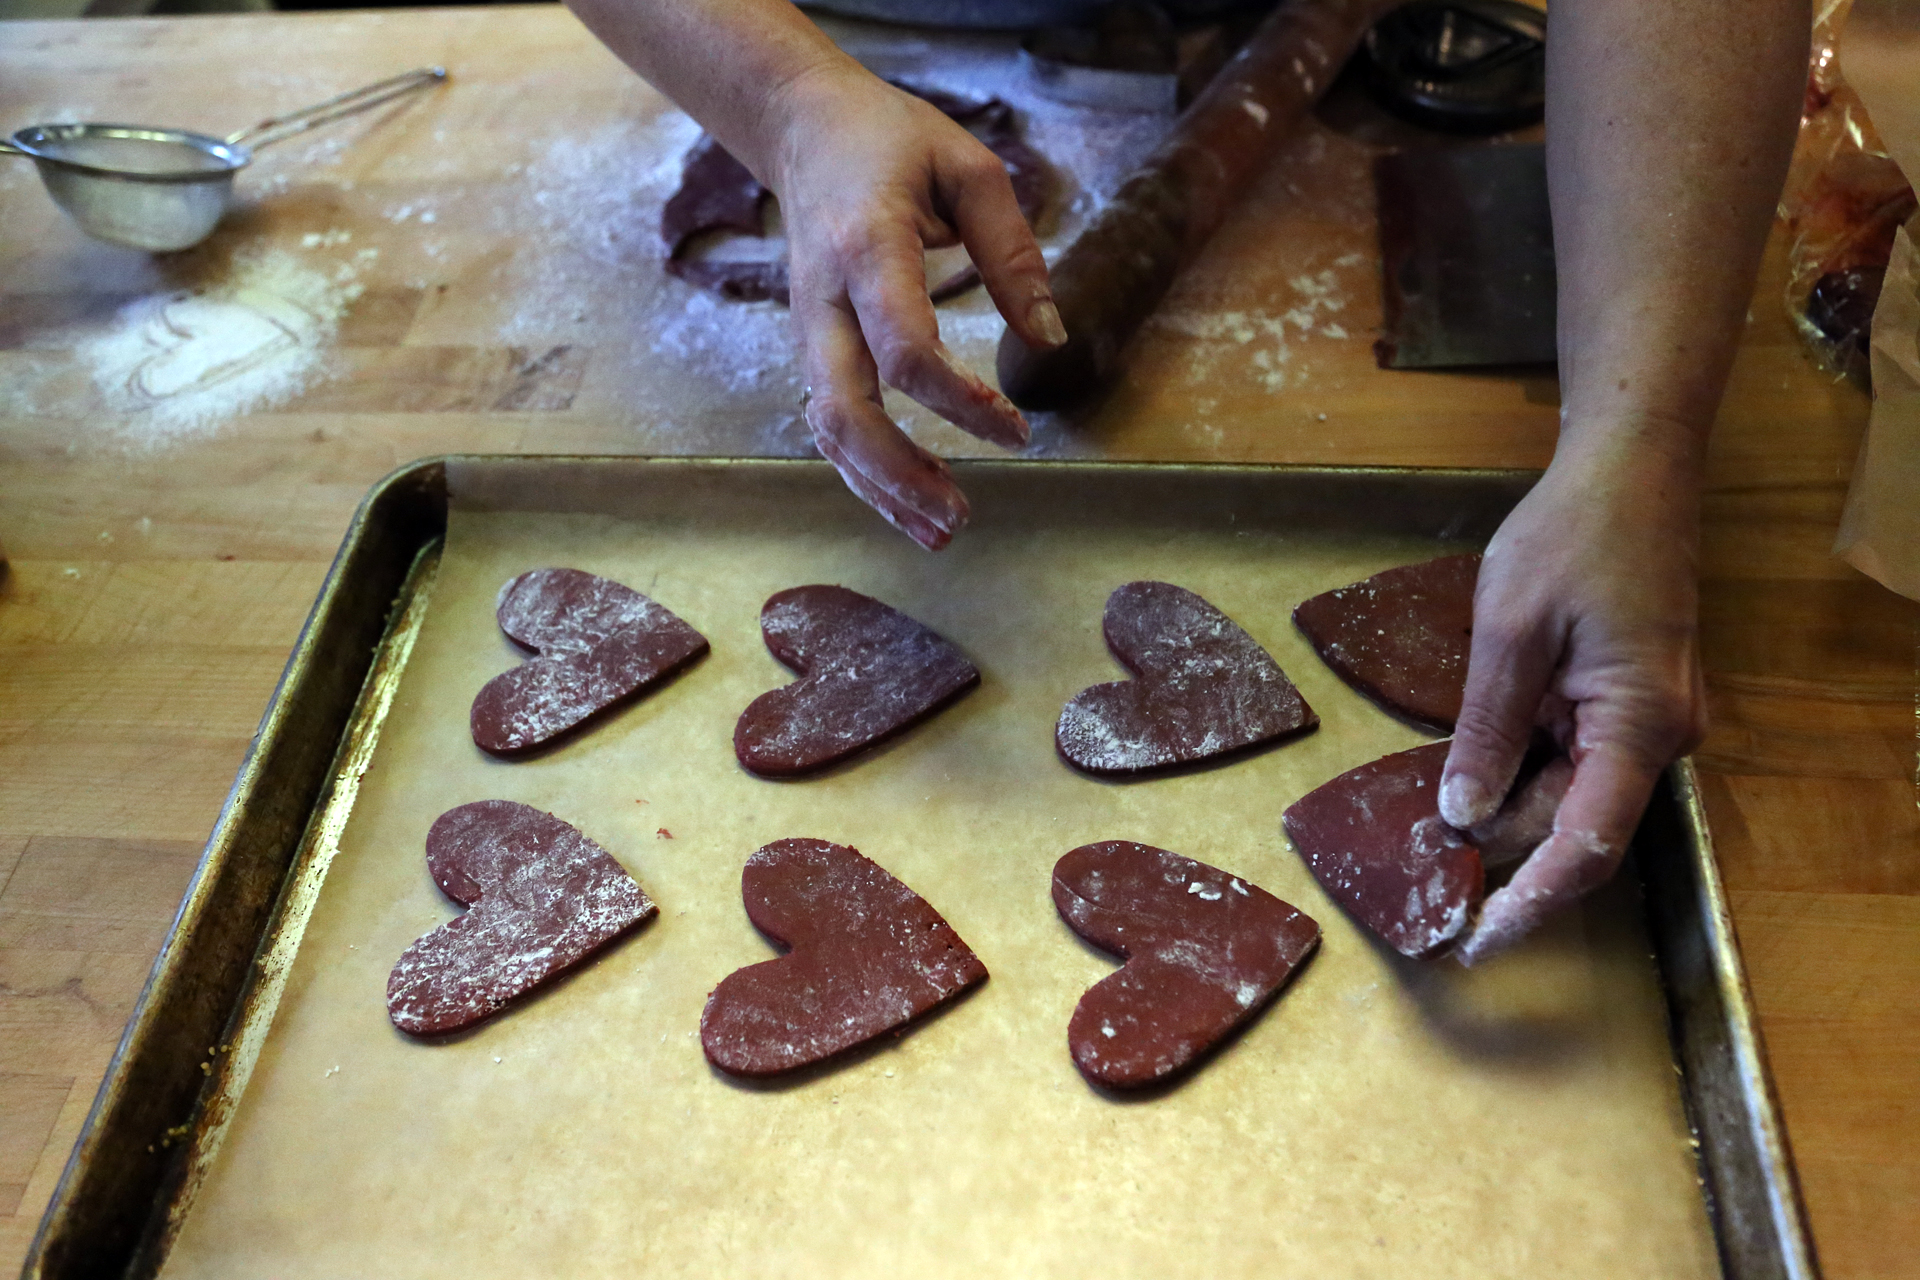 Using a 3-inch heart-shaped cookie cutter, cut out as many hearts as you can.